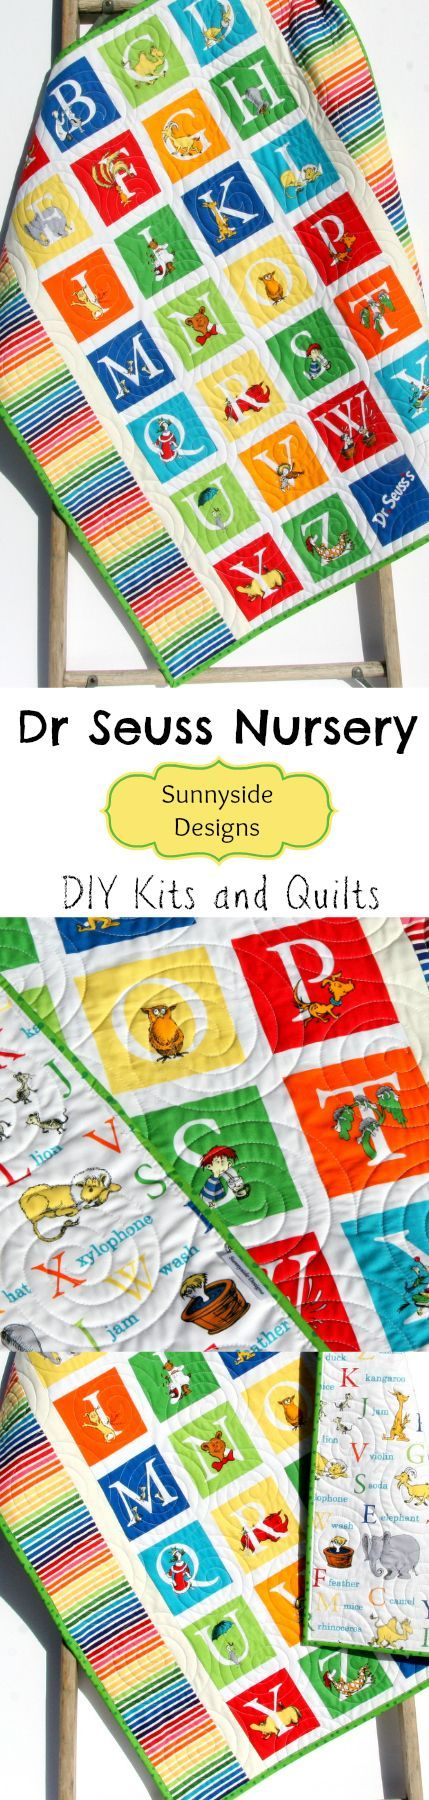 DIY Quilt Kits in Dr Seuss Fabrics, Baby Quilt Kit, ABCs Boy or Girl Crib Bedding, Dr Seuss Nursery, Handmade Baby Quilt by Sunnyside Designs